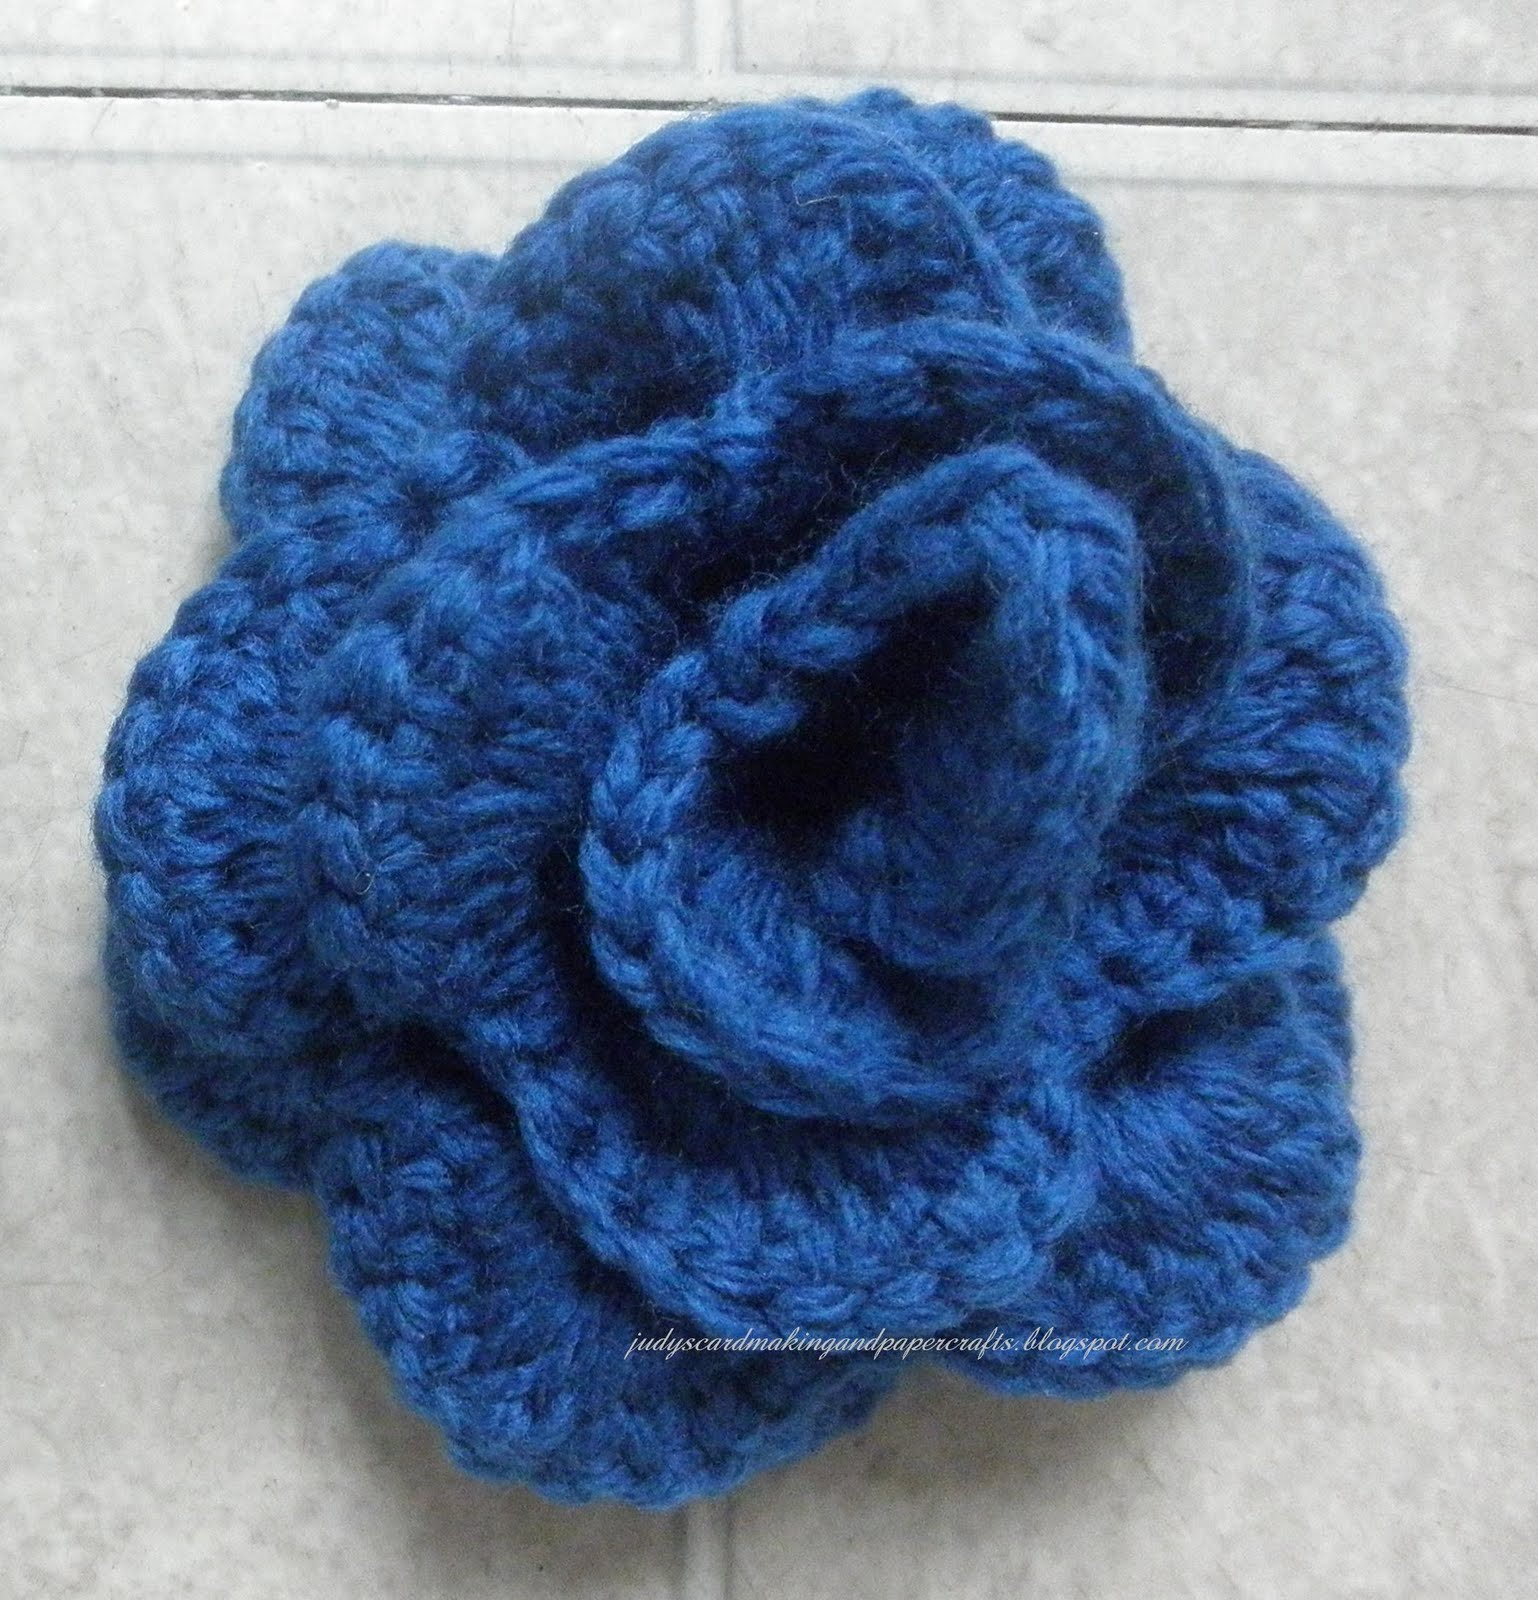 Crochet Stitches Rose : crochet rose pattern this website is my favorite crochet site